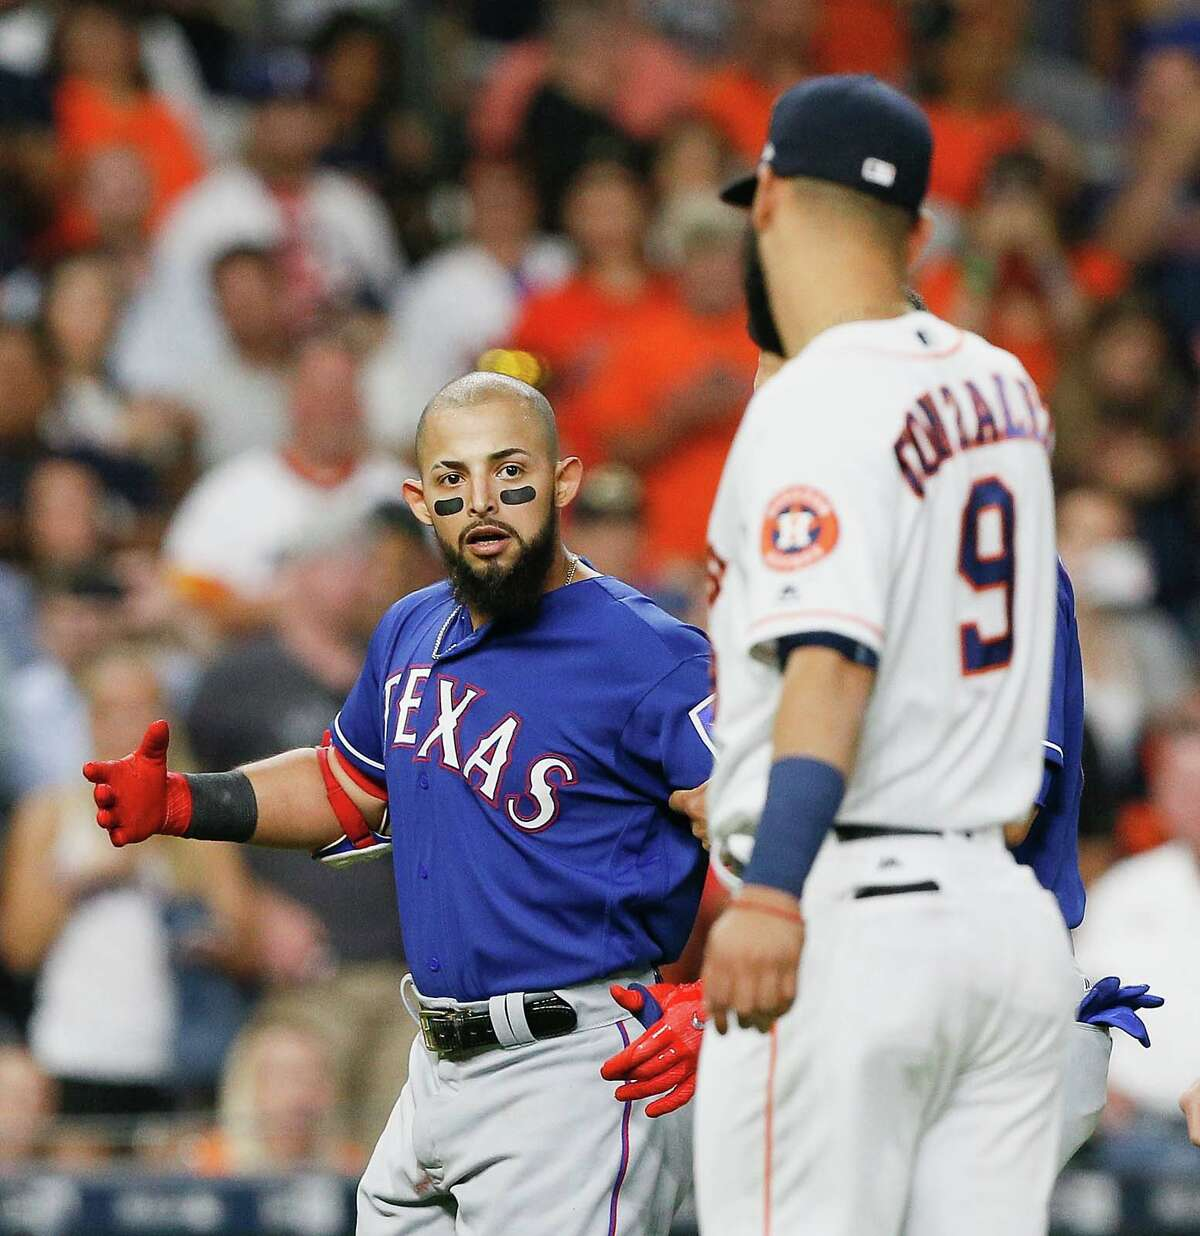 Rougned Odor #12 of the Texas Rangers has words with Marwin Gonzalez #9 of the Houston Astros after benches cleared in the sixth inning when Lance McCullers Jr. #43 of the Houston Astros threw a pitch behind Mike Napoli #5 at Minute Maid Park on May 1, 2017 in Houston, Texas. (Photo by Bob Levey/Getty Images)